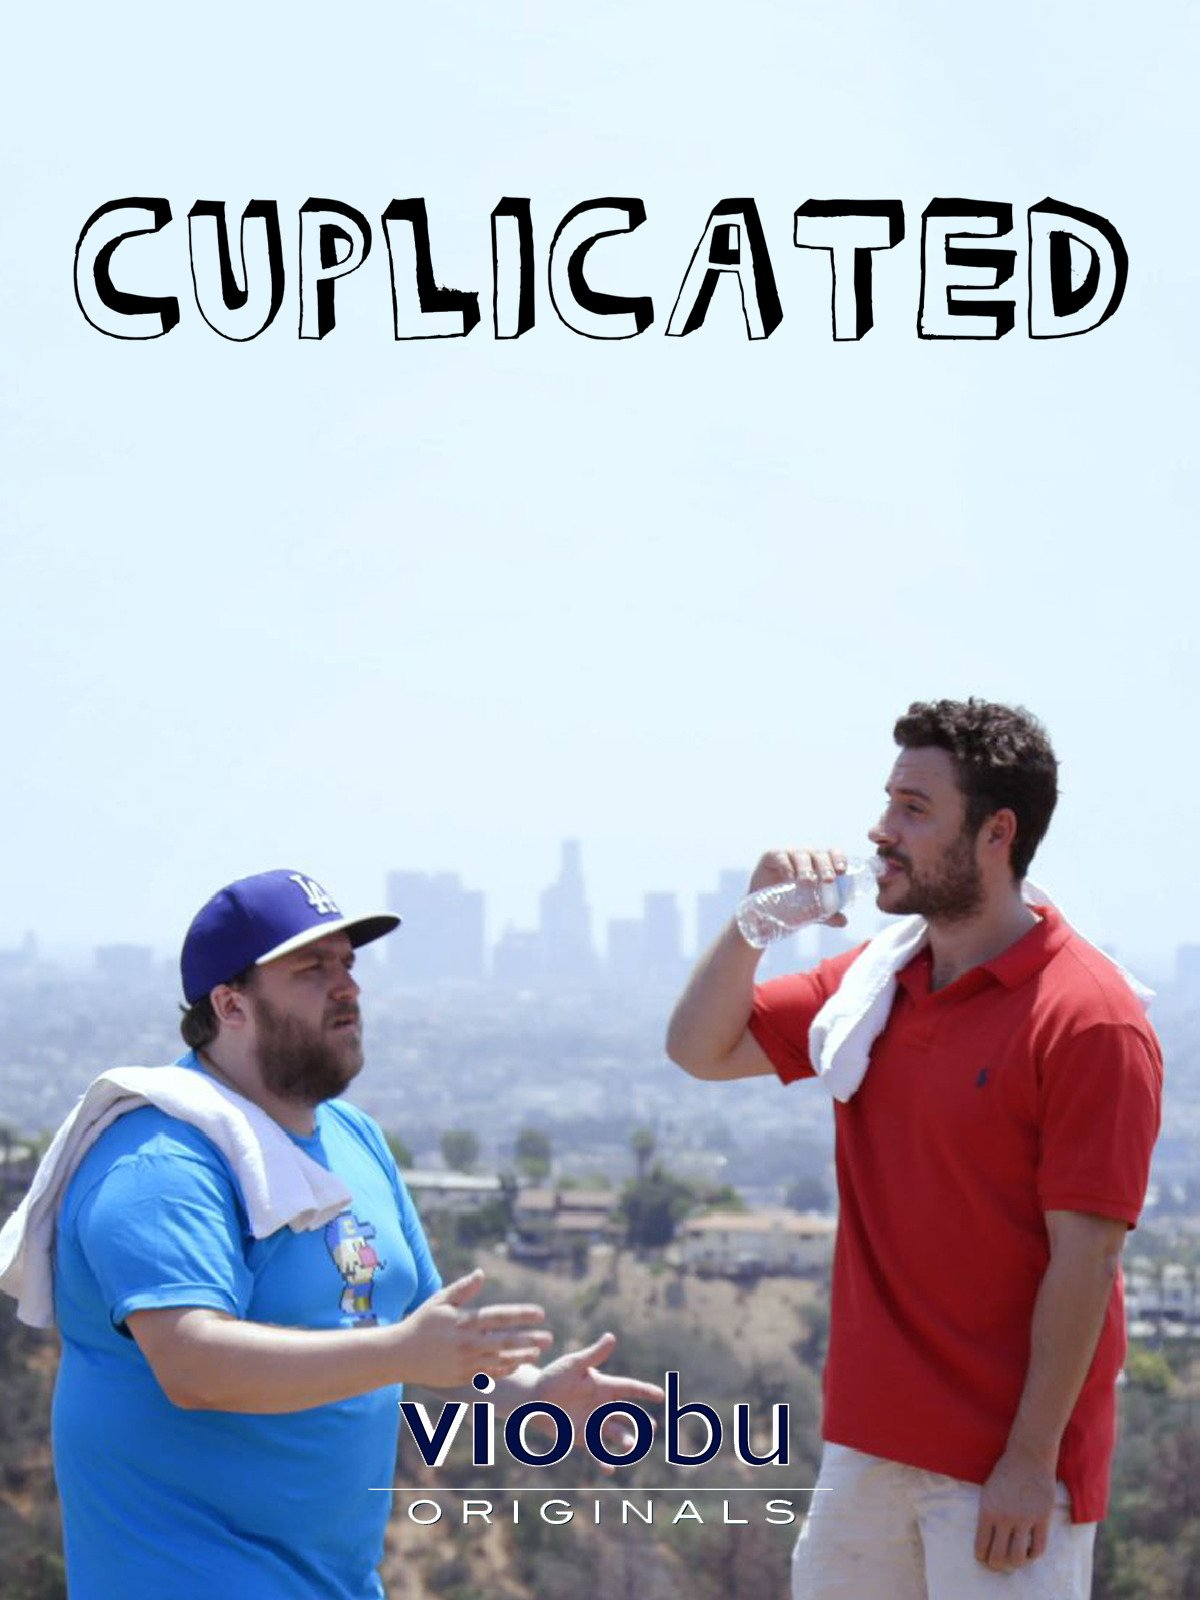 Cuplicated